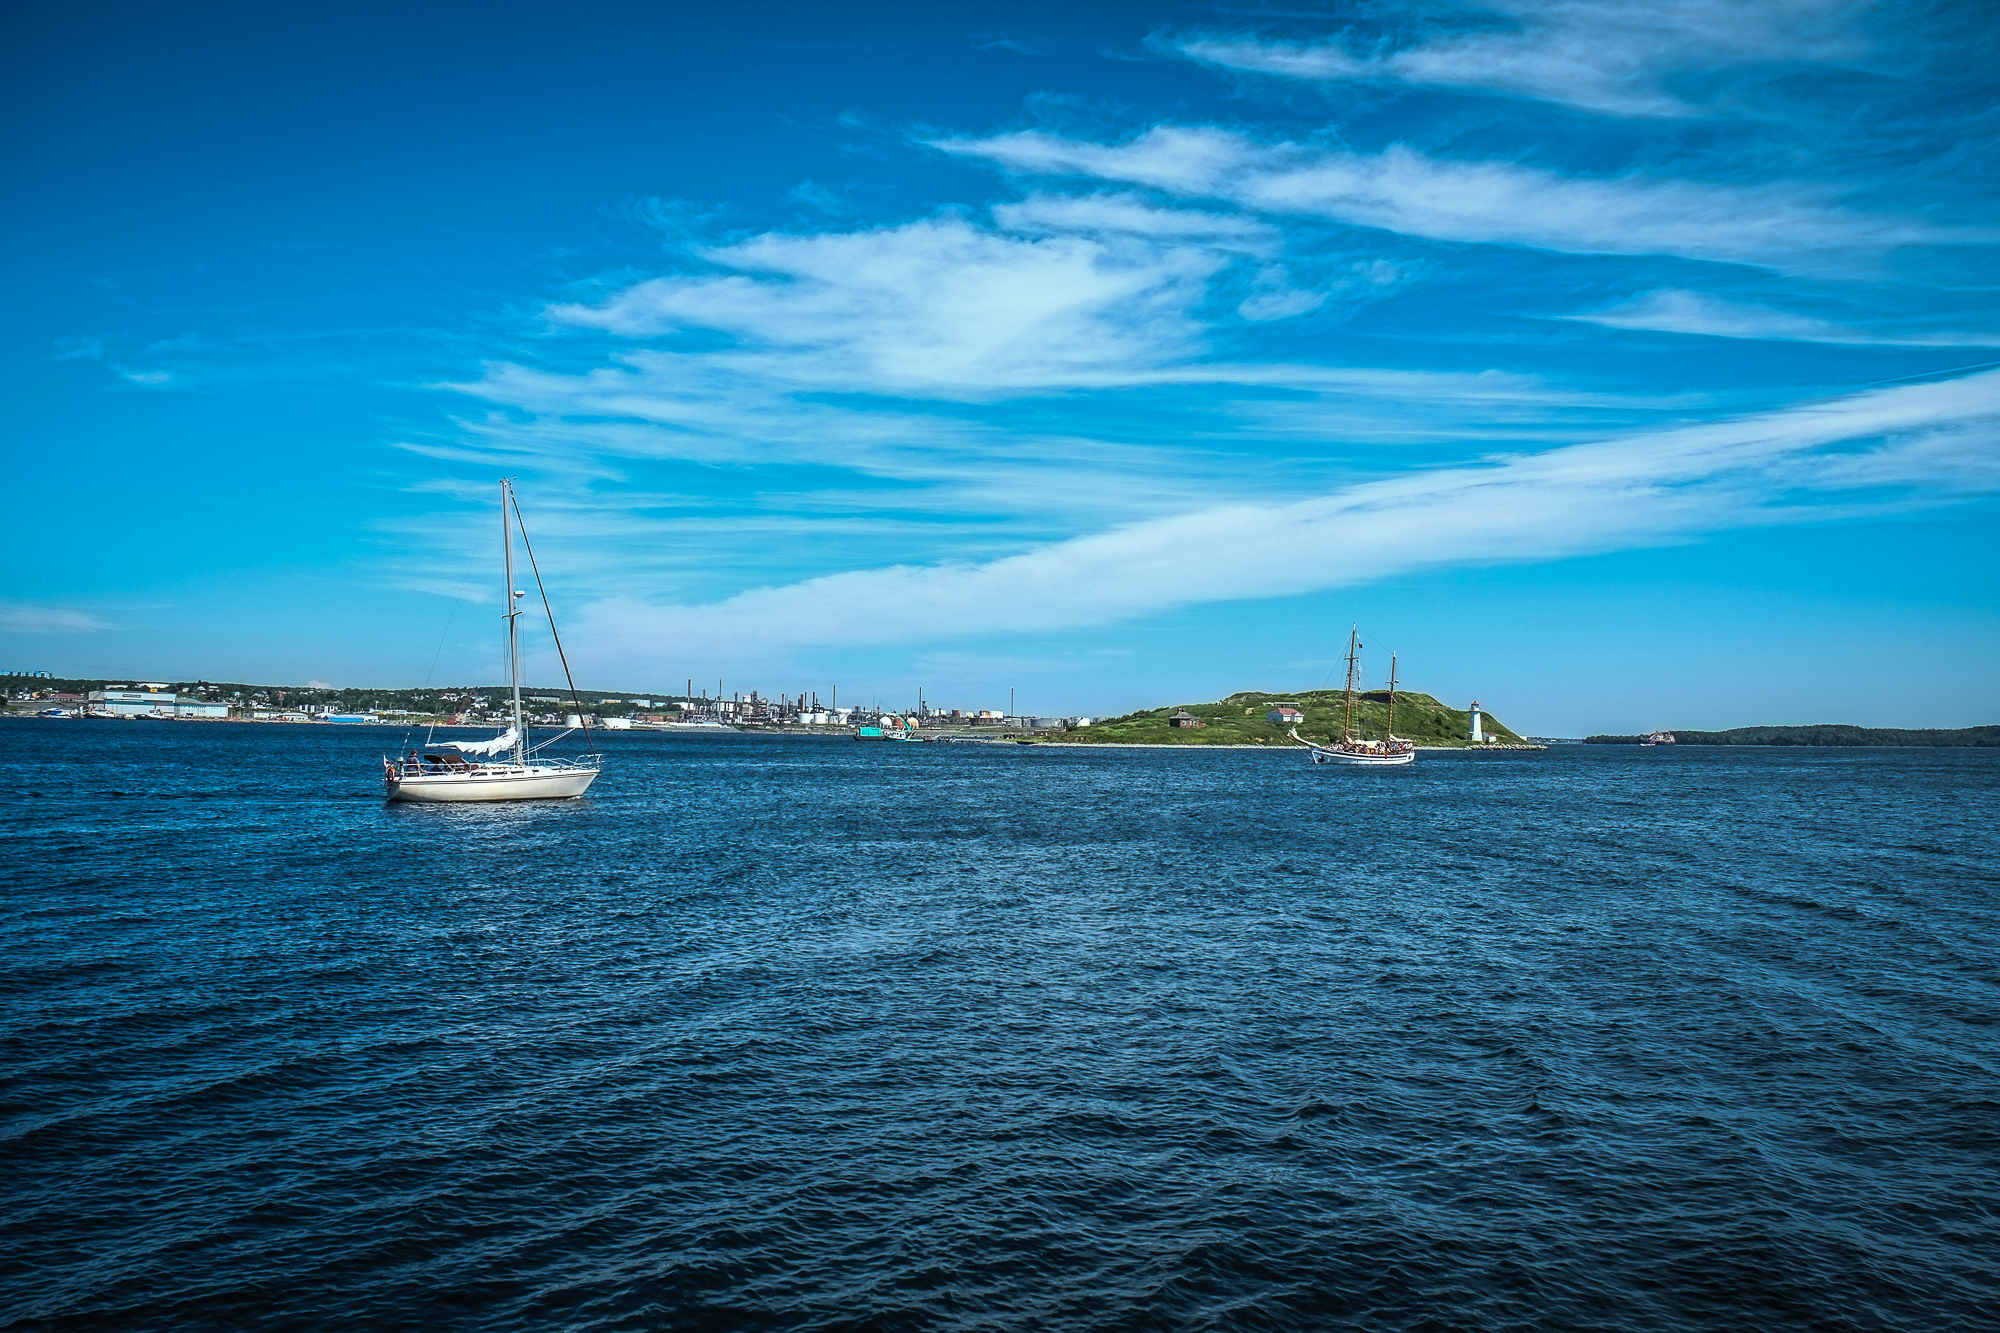 A View of George's Island, Halifax, Nova Scoita